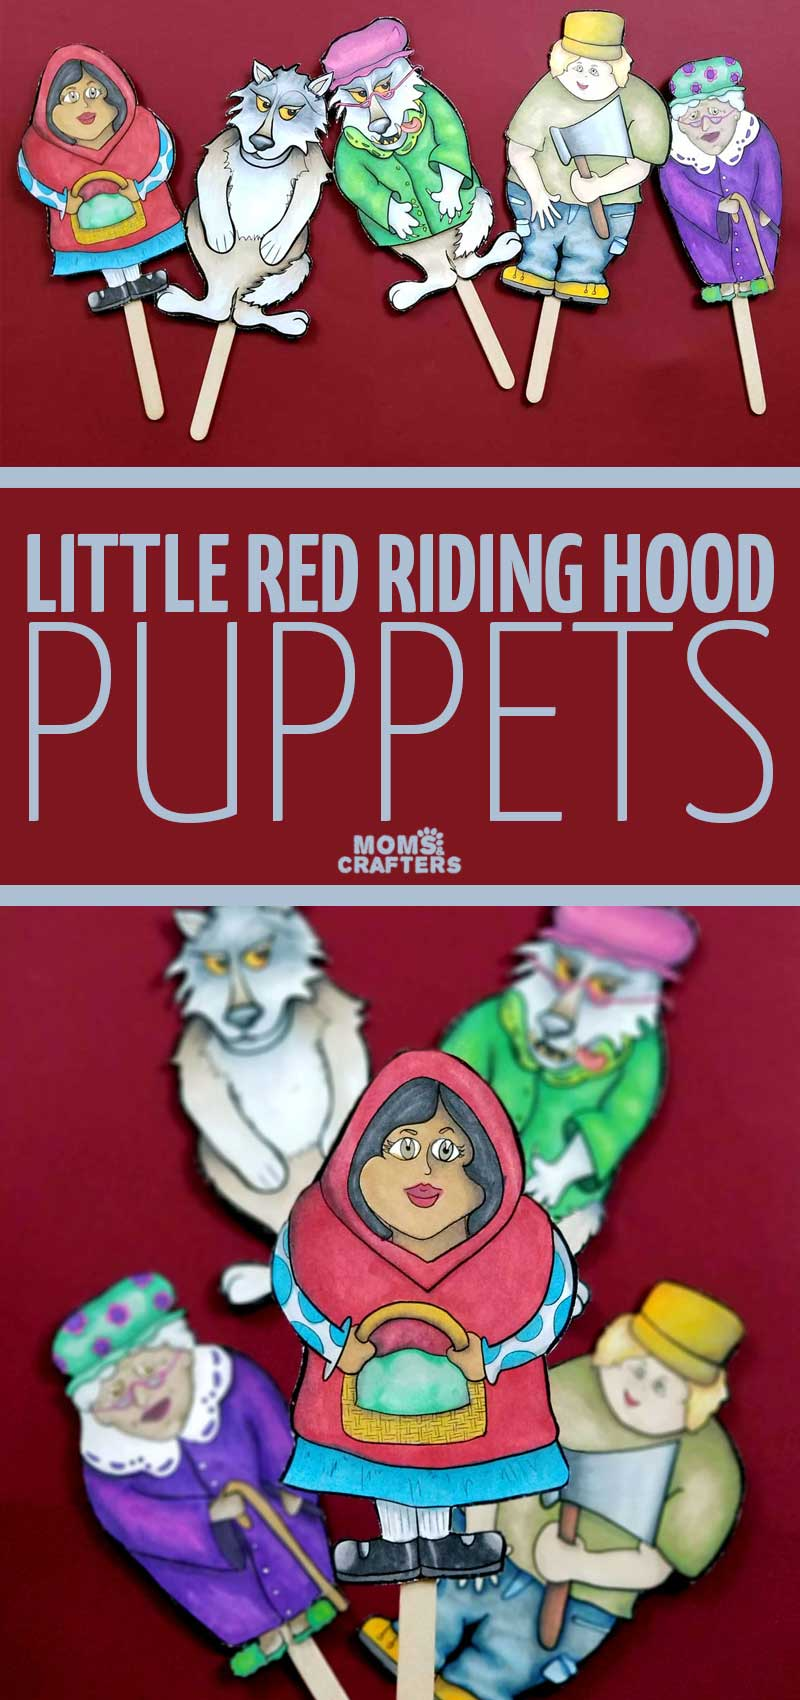 Click to download beautiful Little Red Riding Hood puppets - these paper puppets are perfect for storytelling with kids! It's a fun literacy activity and beautiful multicultural puppets for teaching kids naturally about diversity.